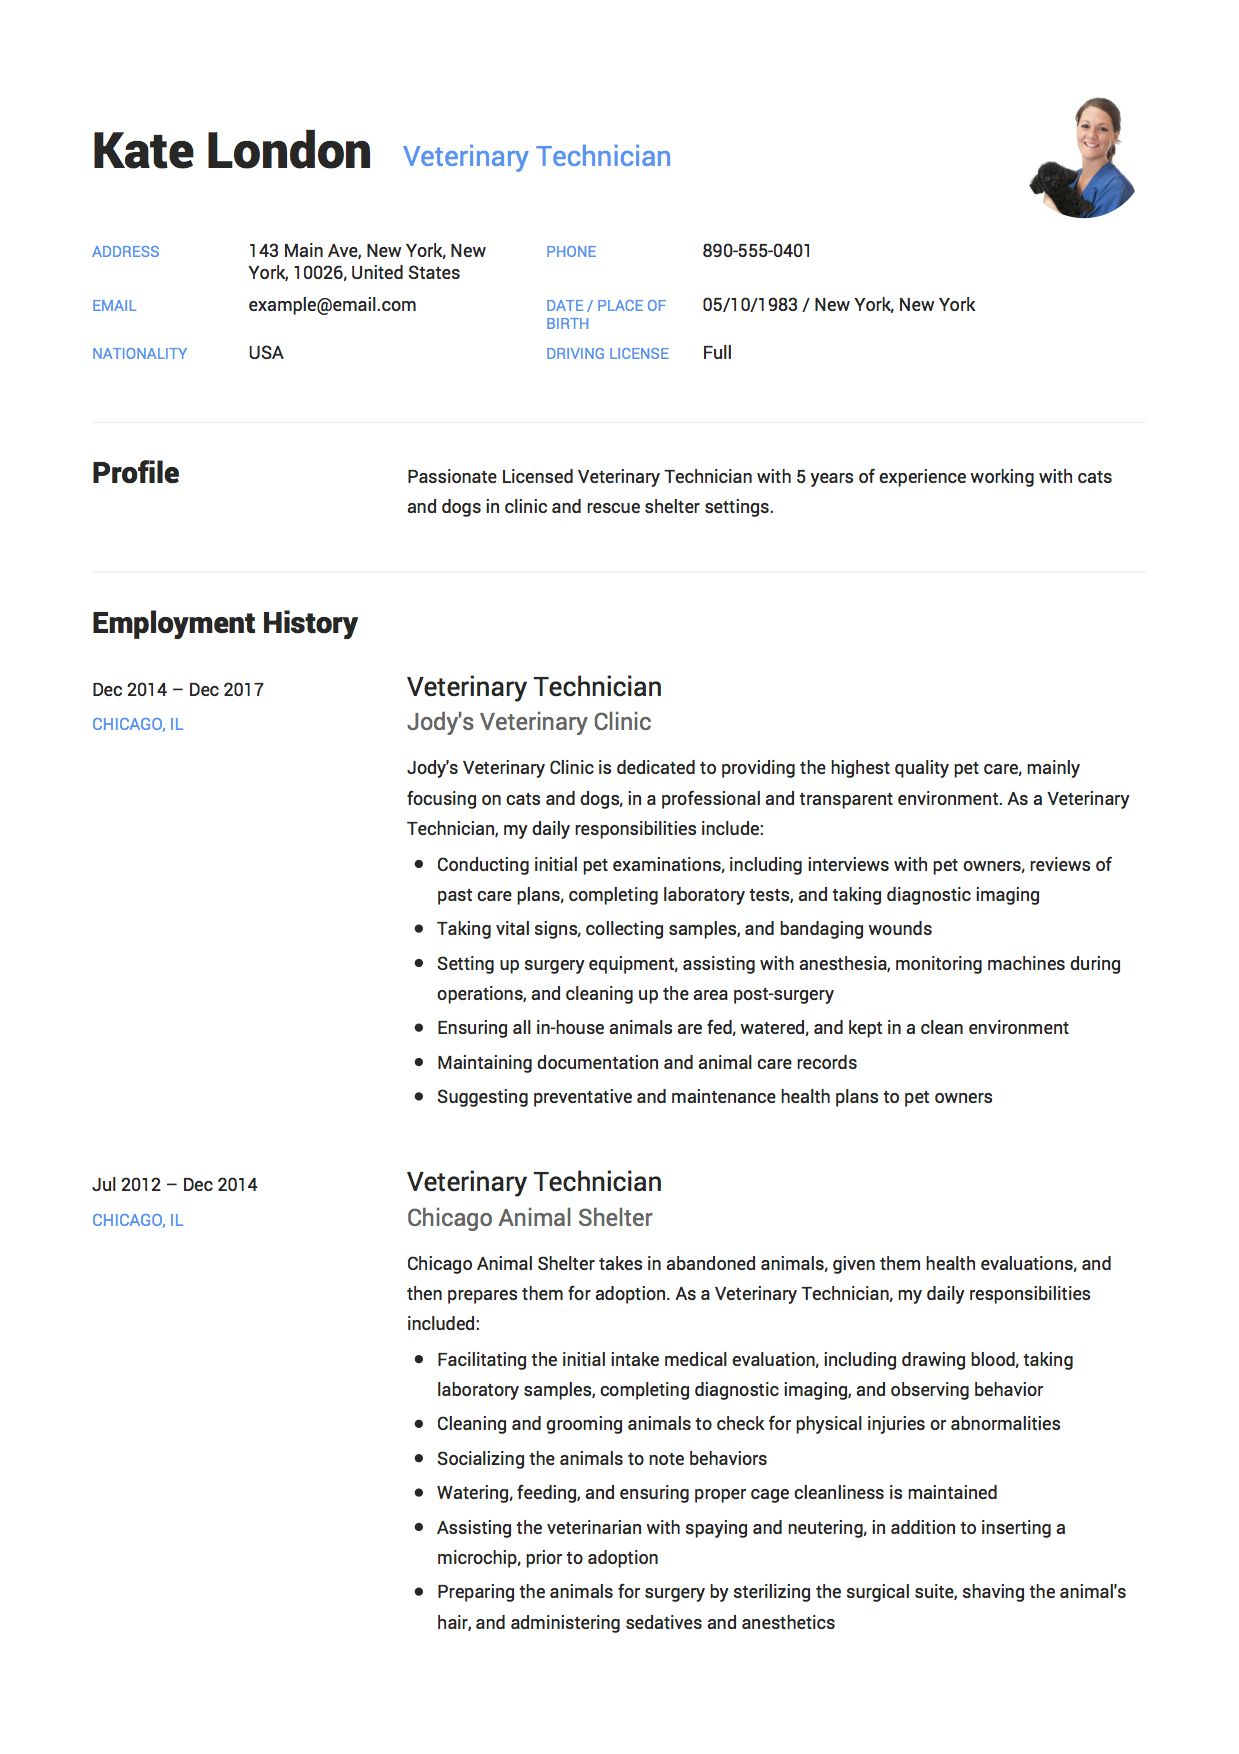 Veterinary Technician Resume Job Resume Examples Veterinary Technician Resume Examples